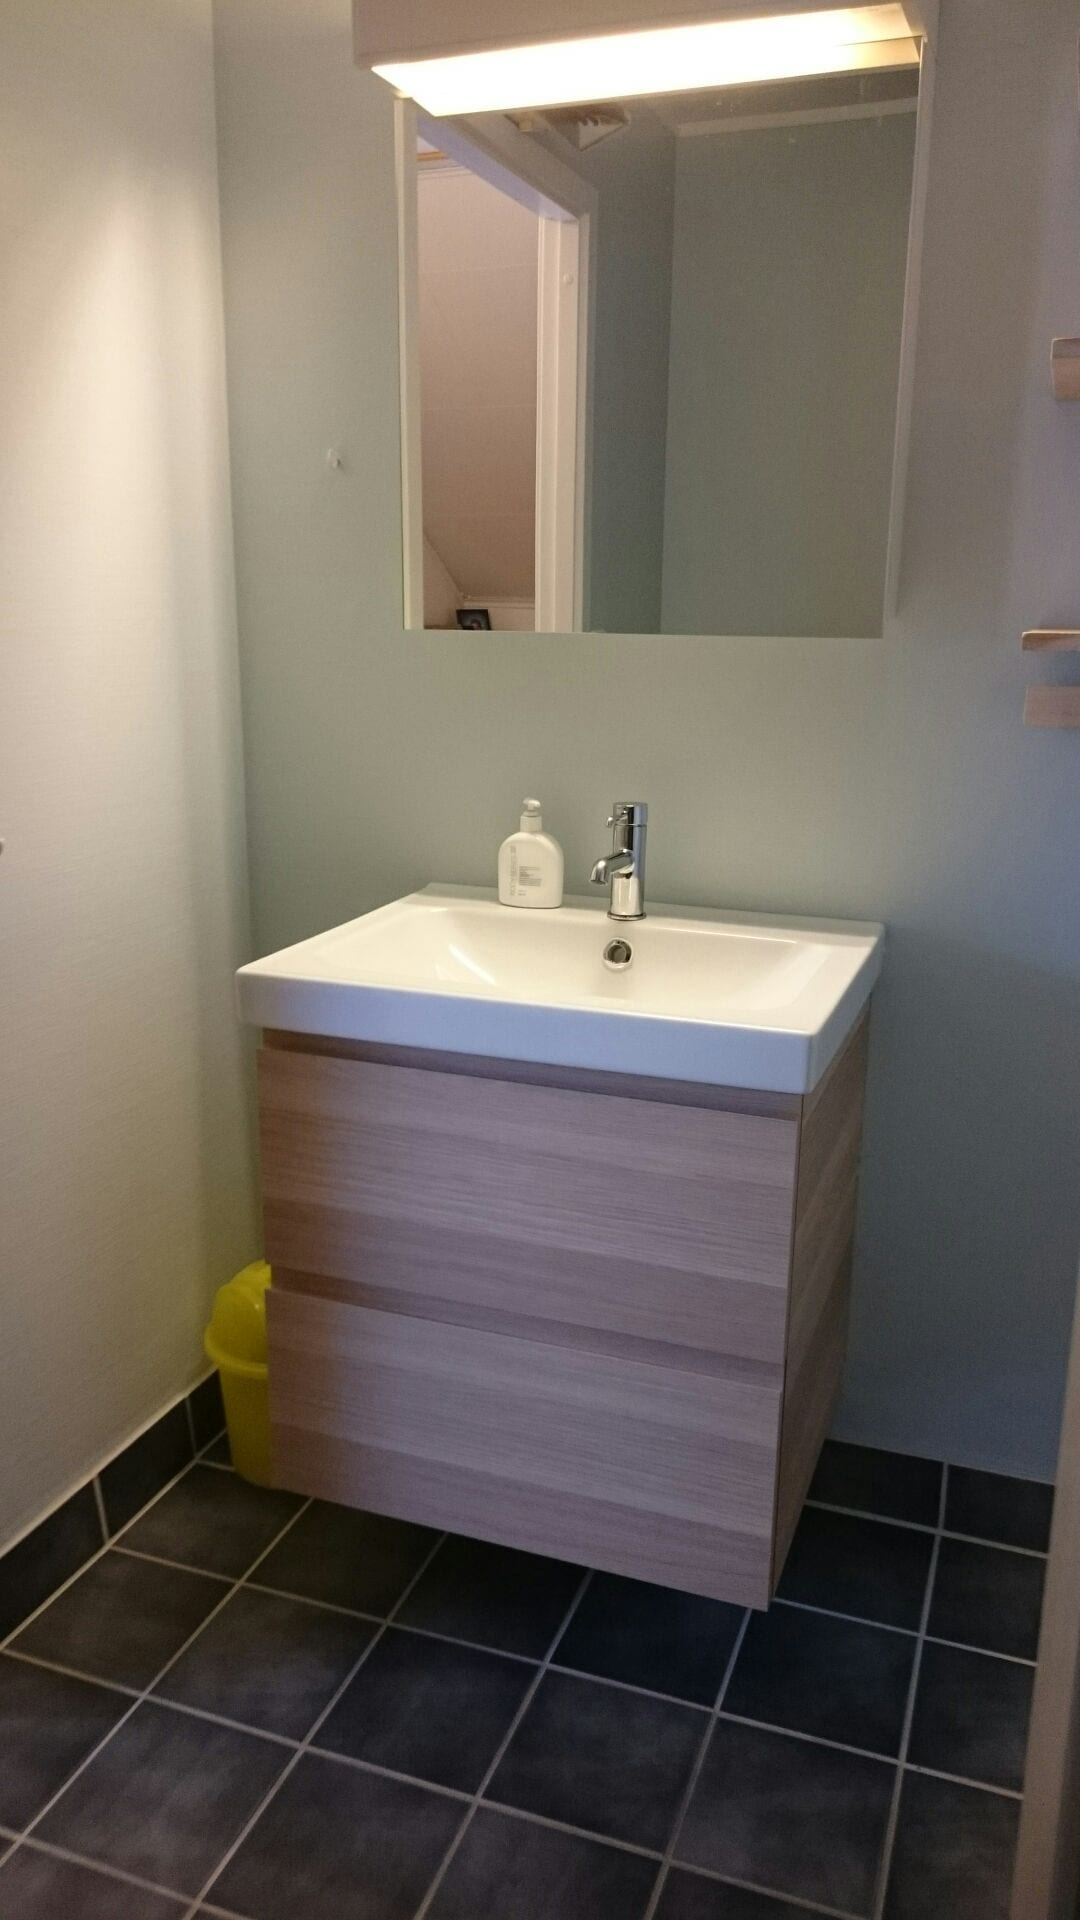 The bathroom contains a wash and mirror, a shower cabinet and a toilet. The sink and drawers are new (summer 2015), and the bathroom walls were also painted to give the bathroom a mini-makeover.